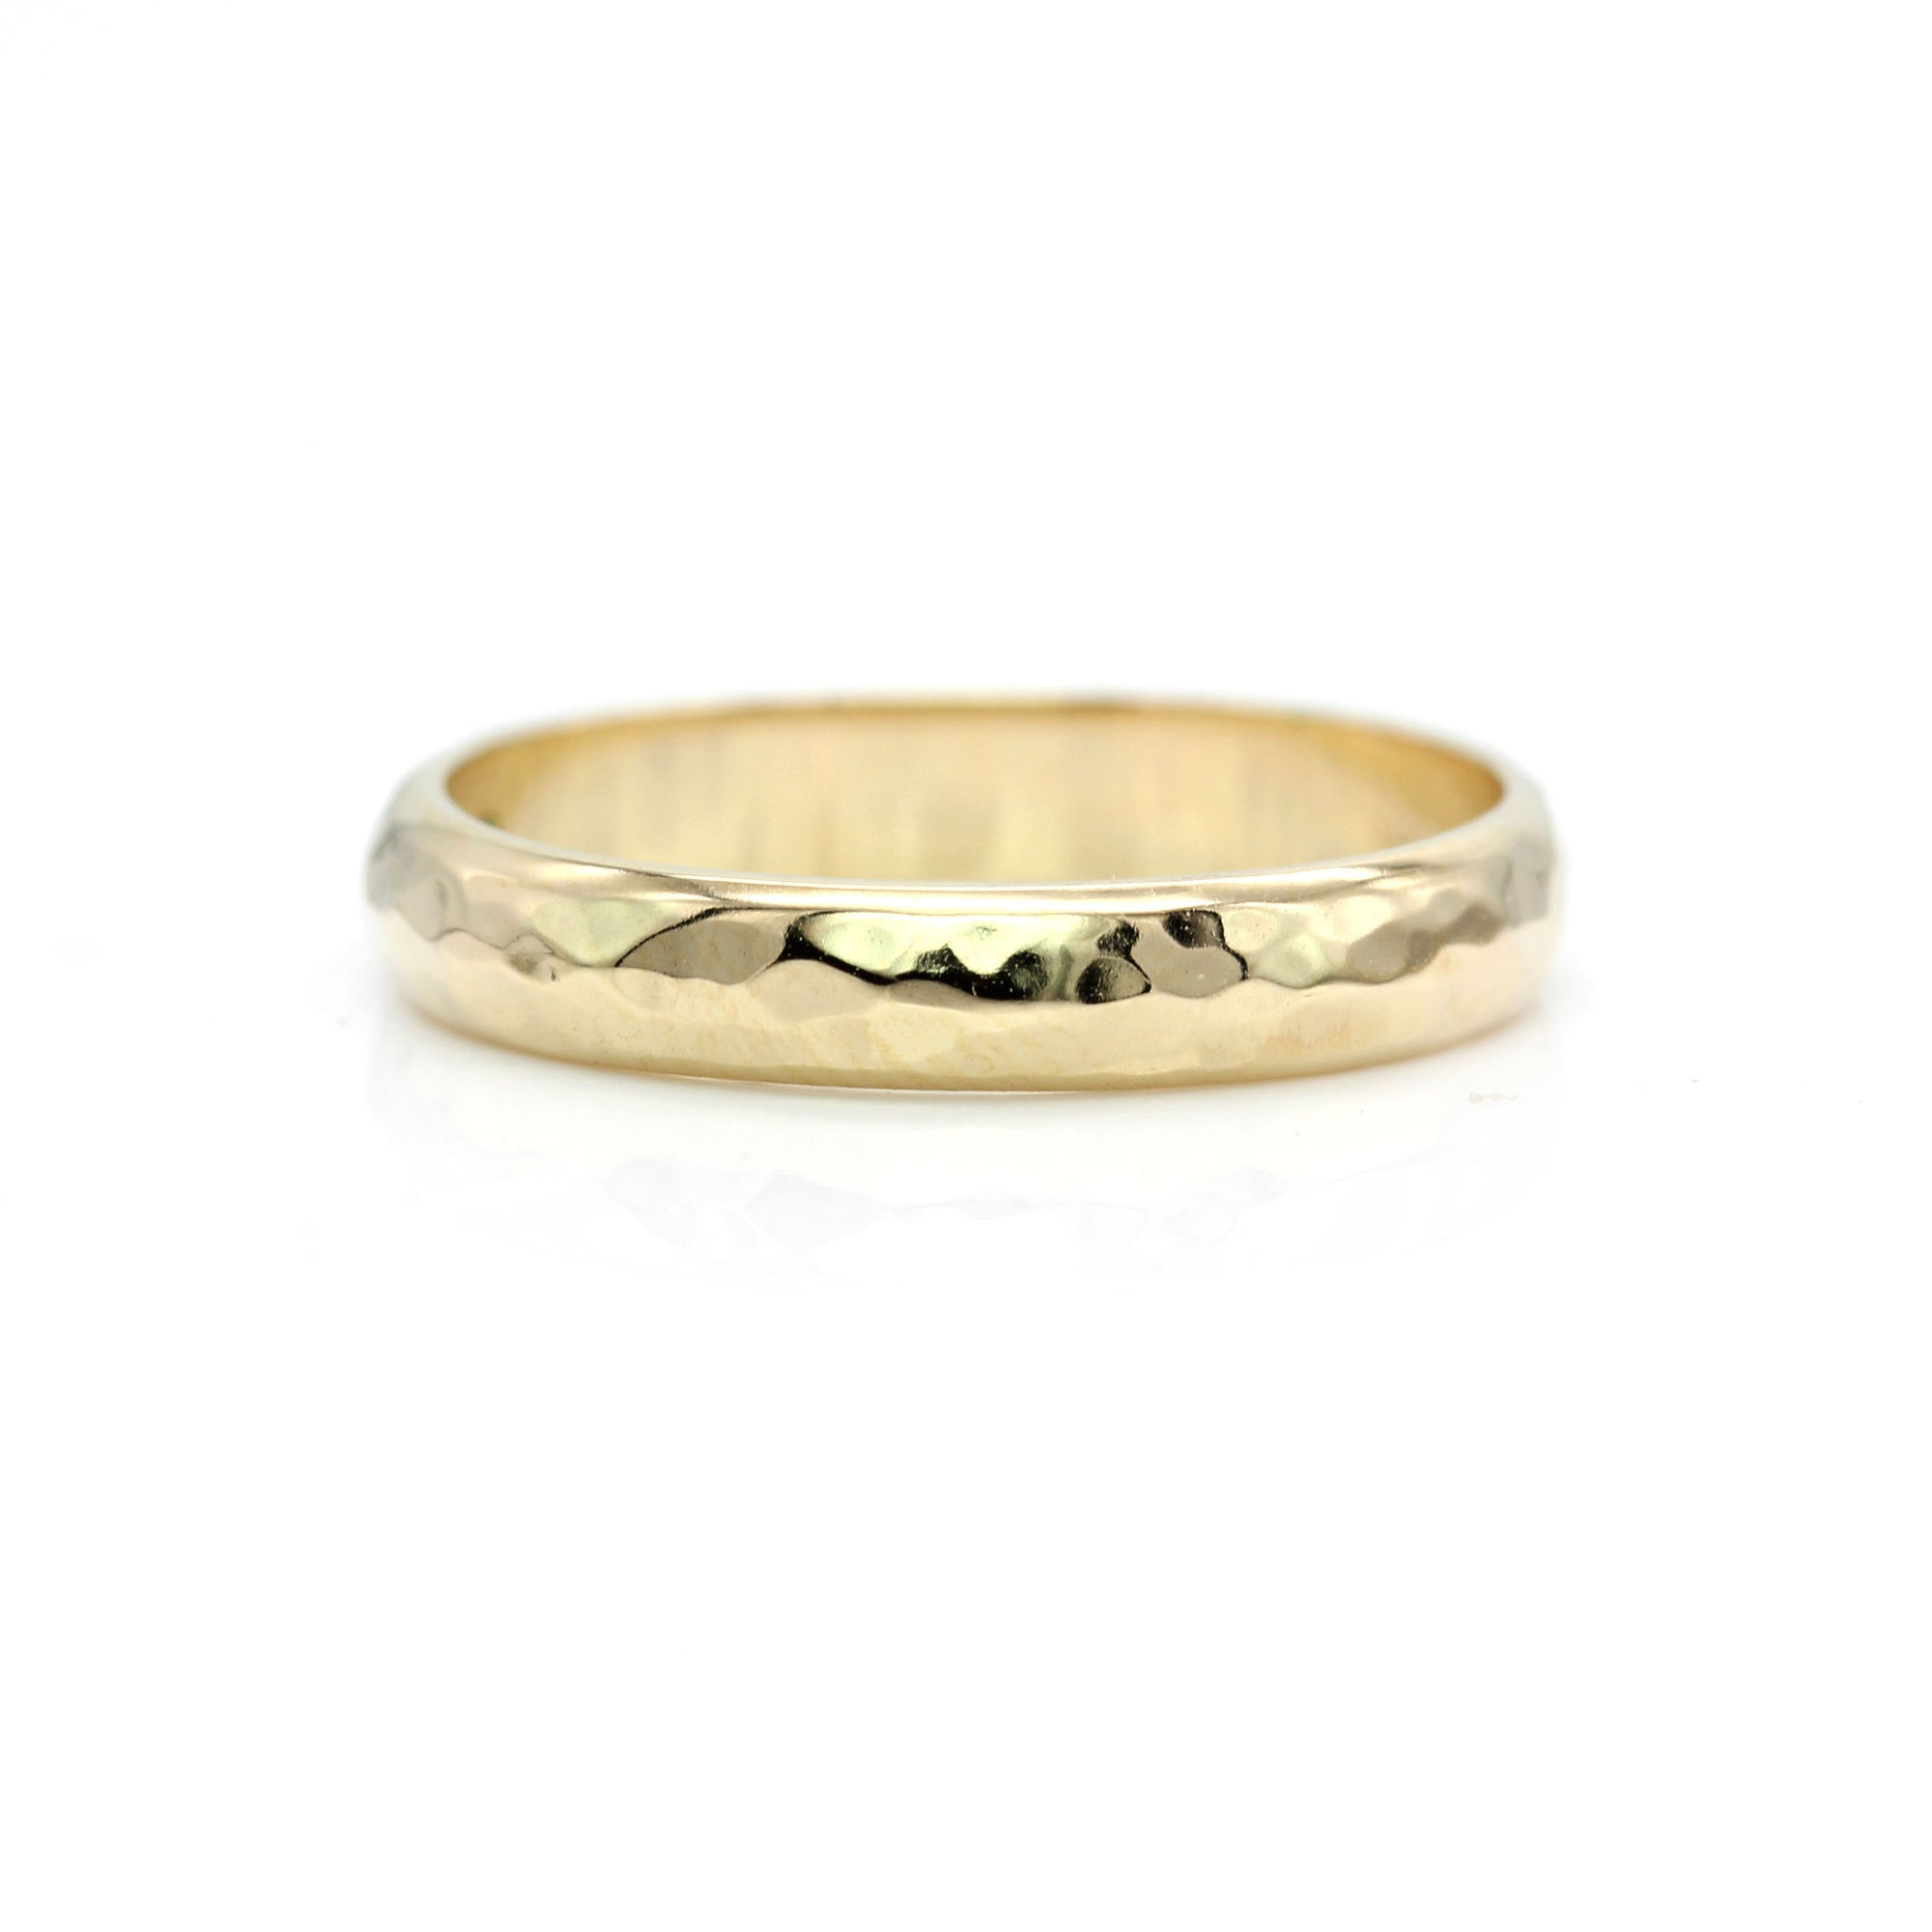 Hammered Ring Band - Yellow Gold